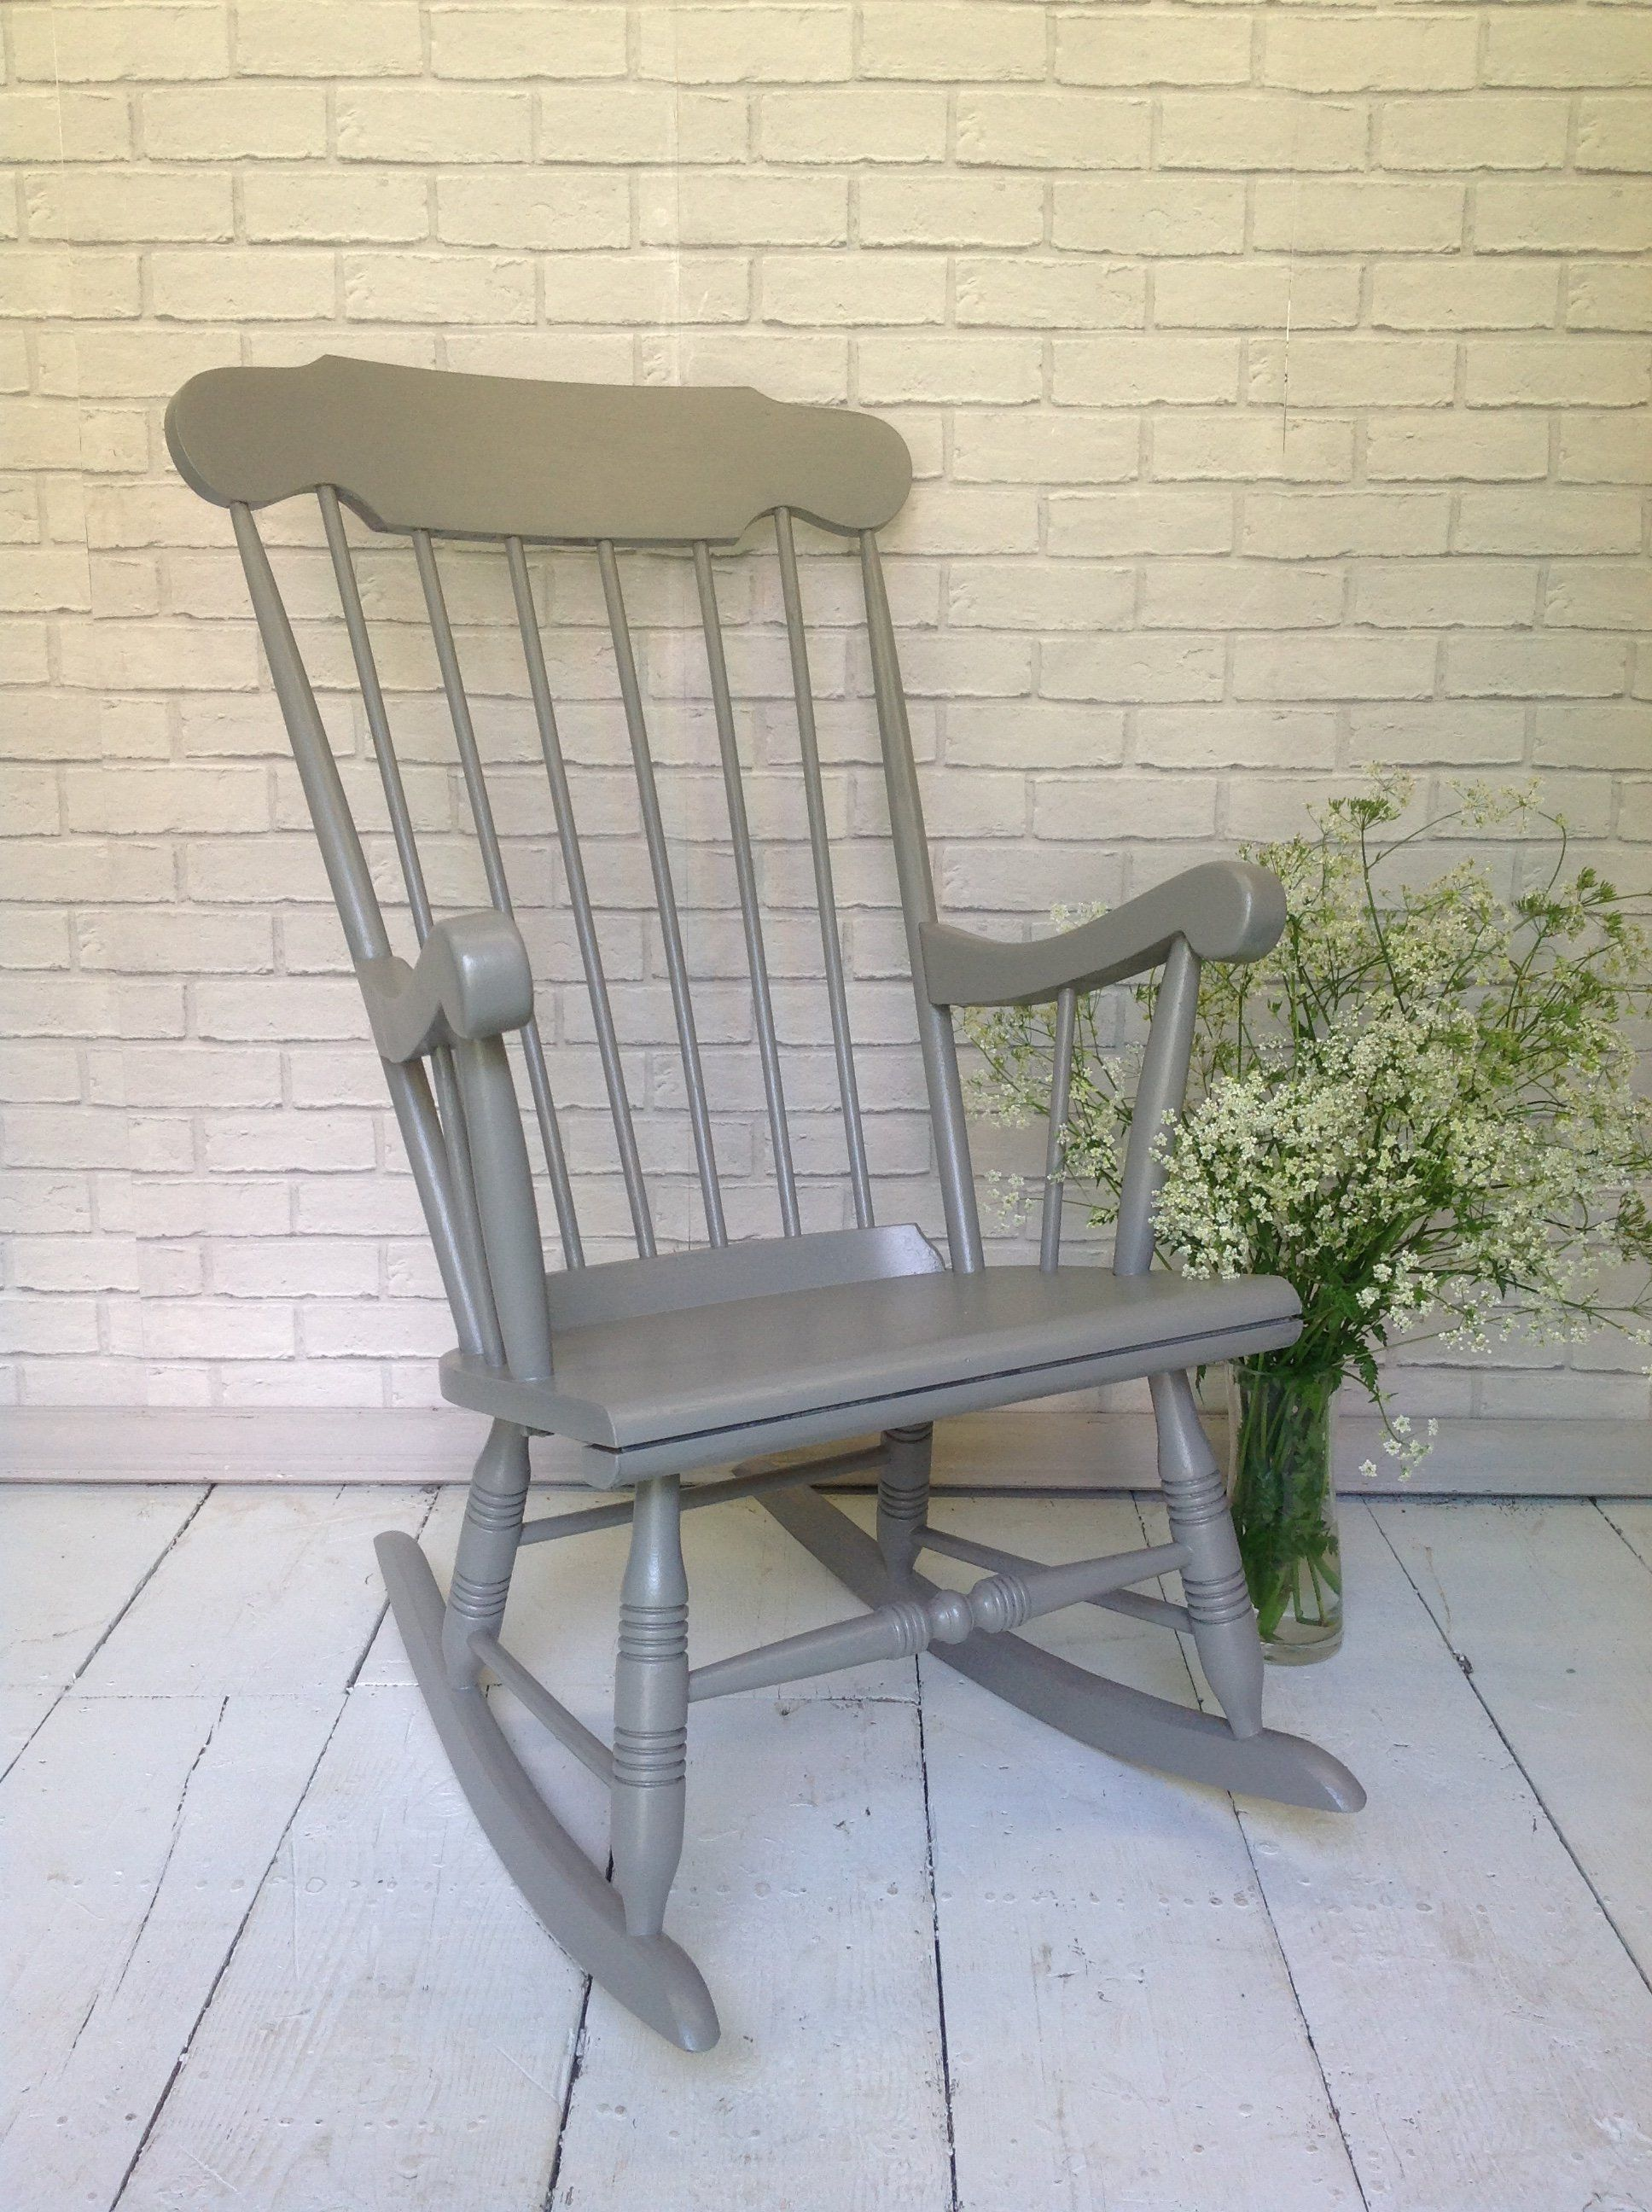 Park Art My WordPress Blog_Unfinished Rocking Chairs For Sale